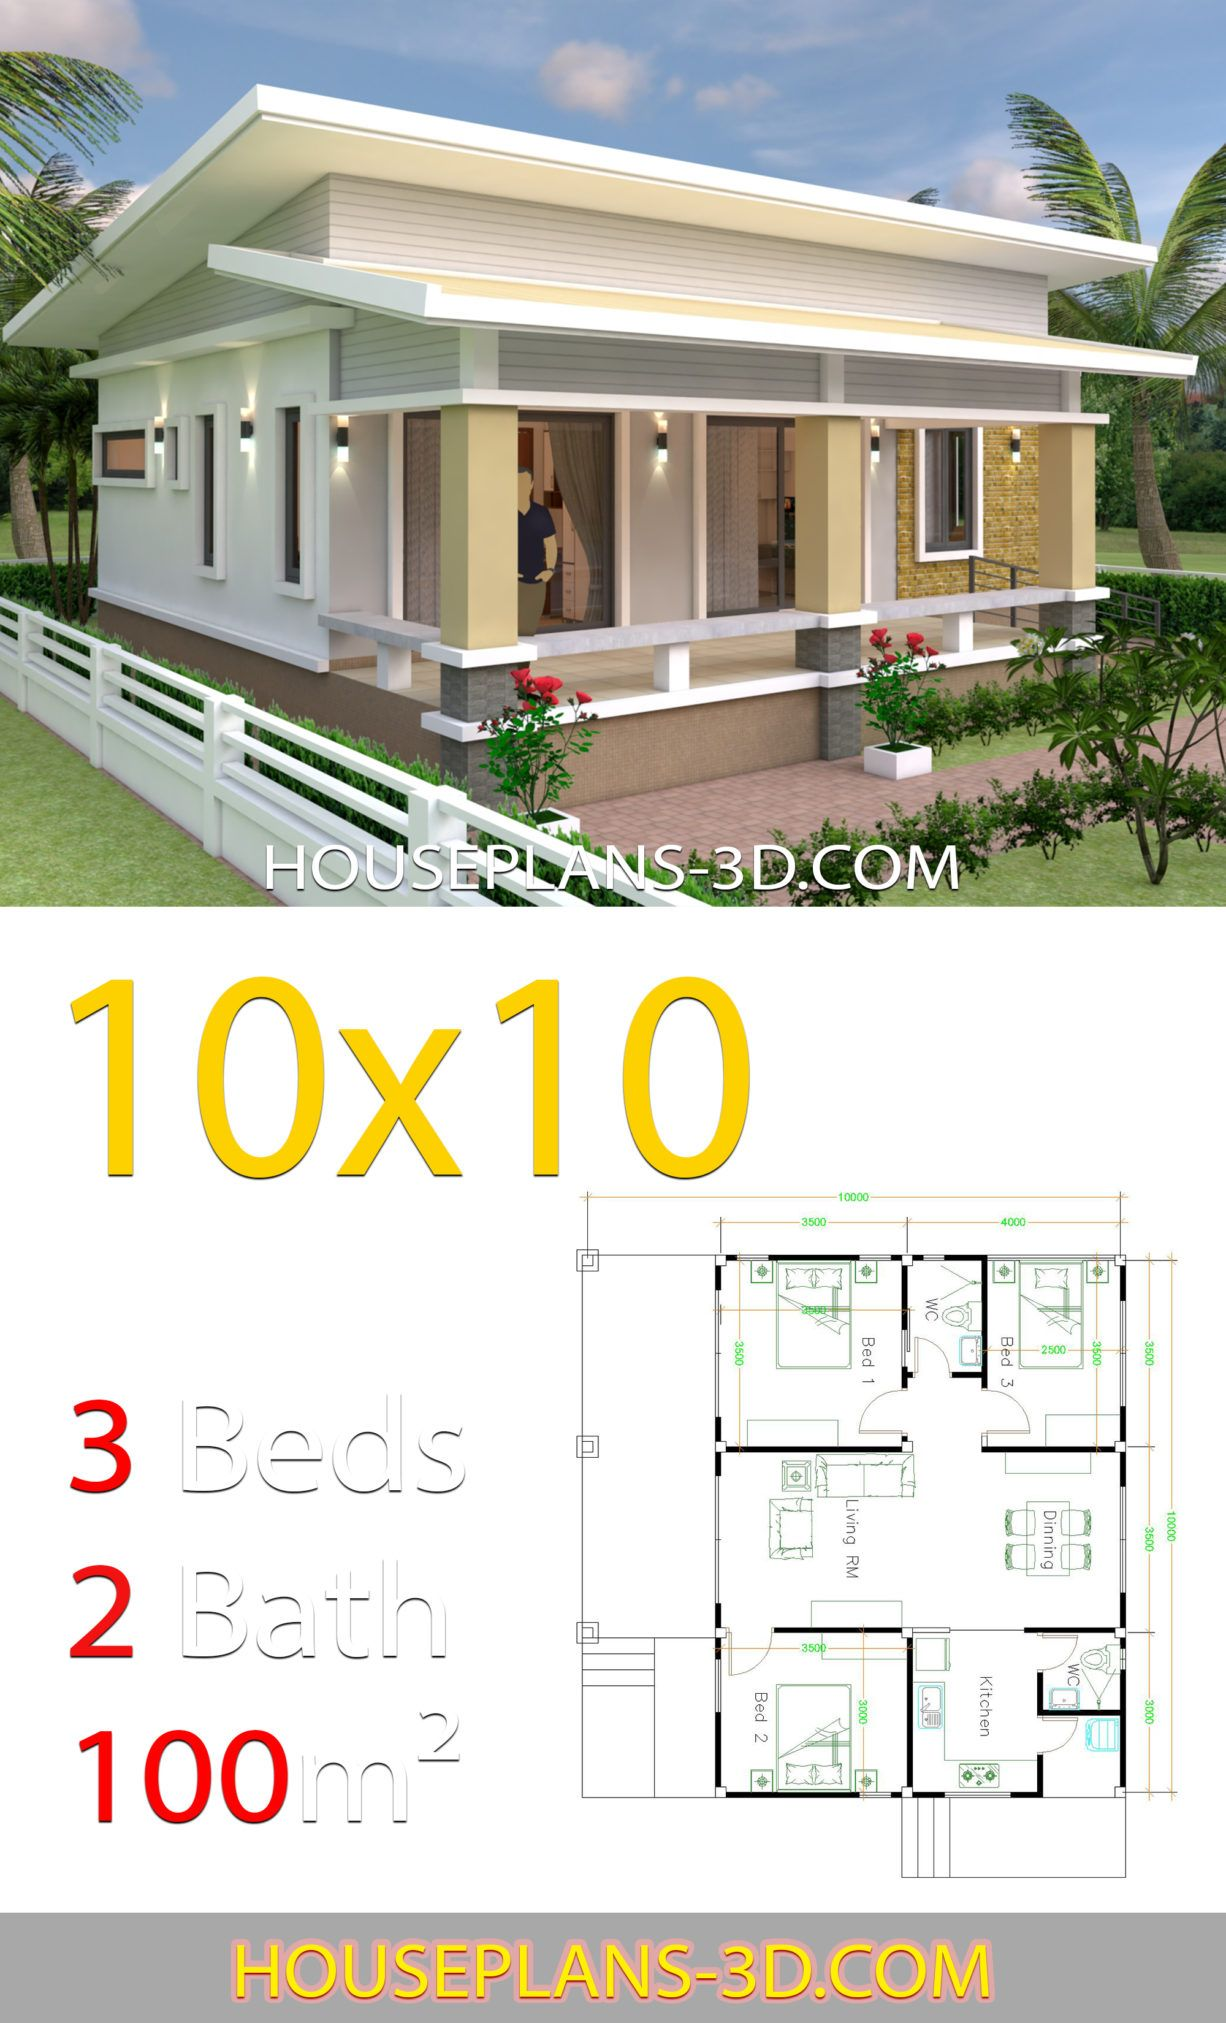 Find Your House Plans Below House Plans 3d In 2020 Bungalow House Design Architectural House Plans My House Plans